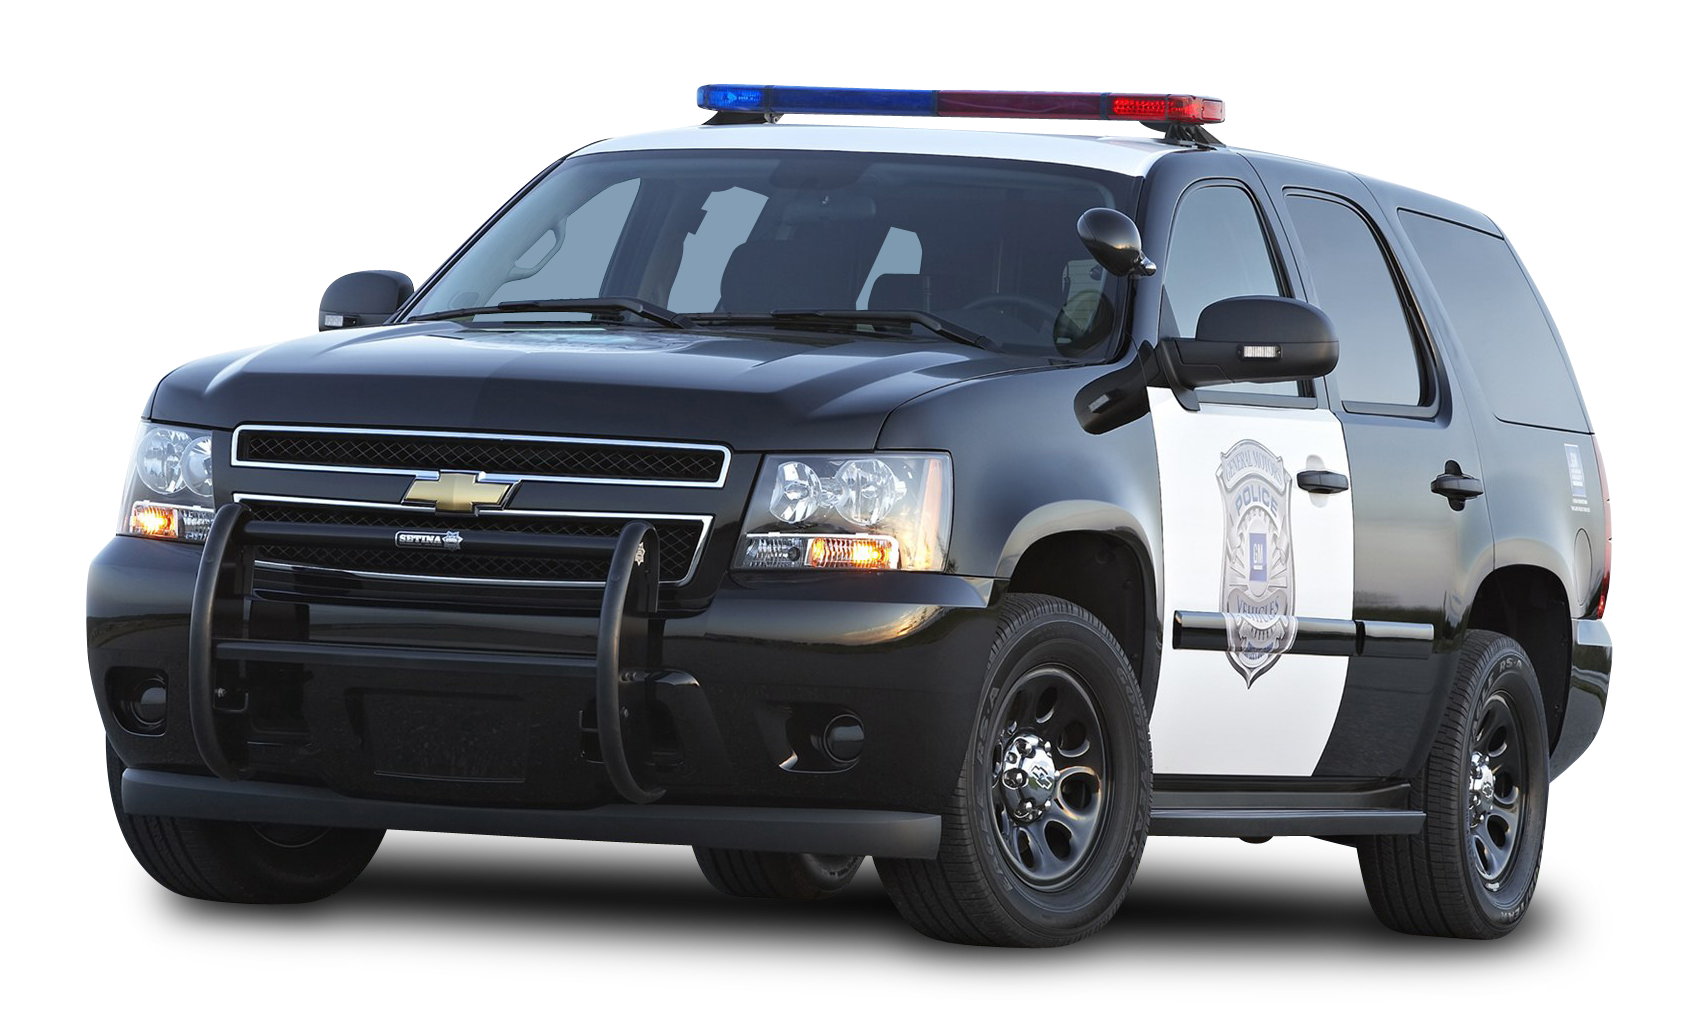 Black Chevy Tahoe Police Suv Ppv Car Png Image Police Cars